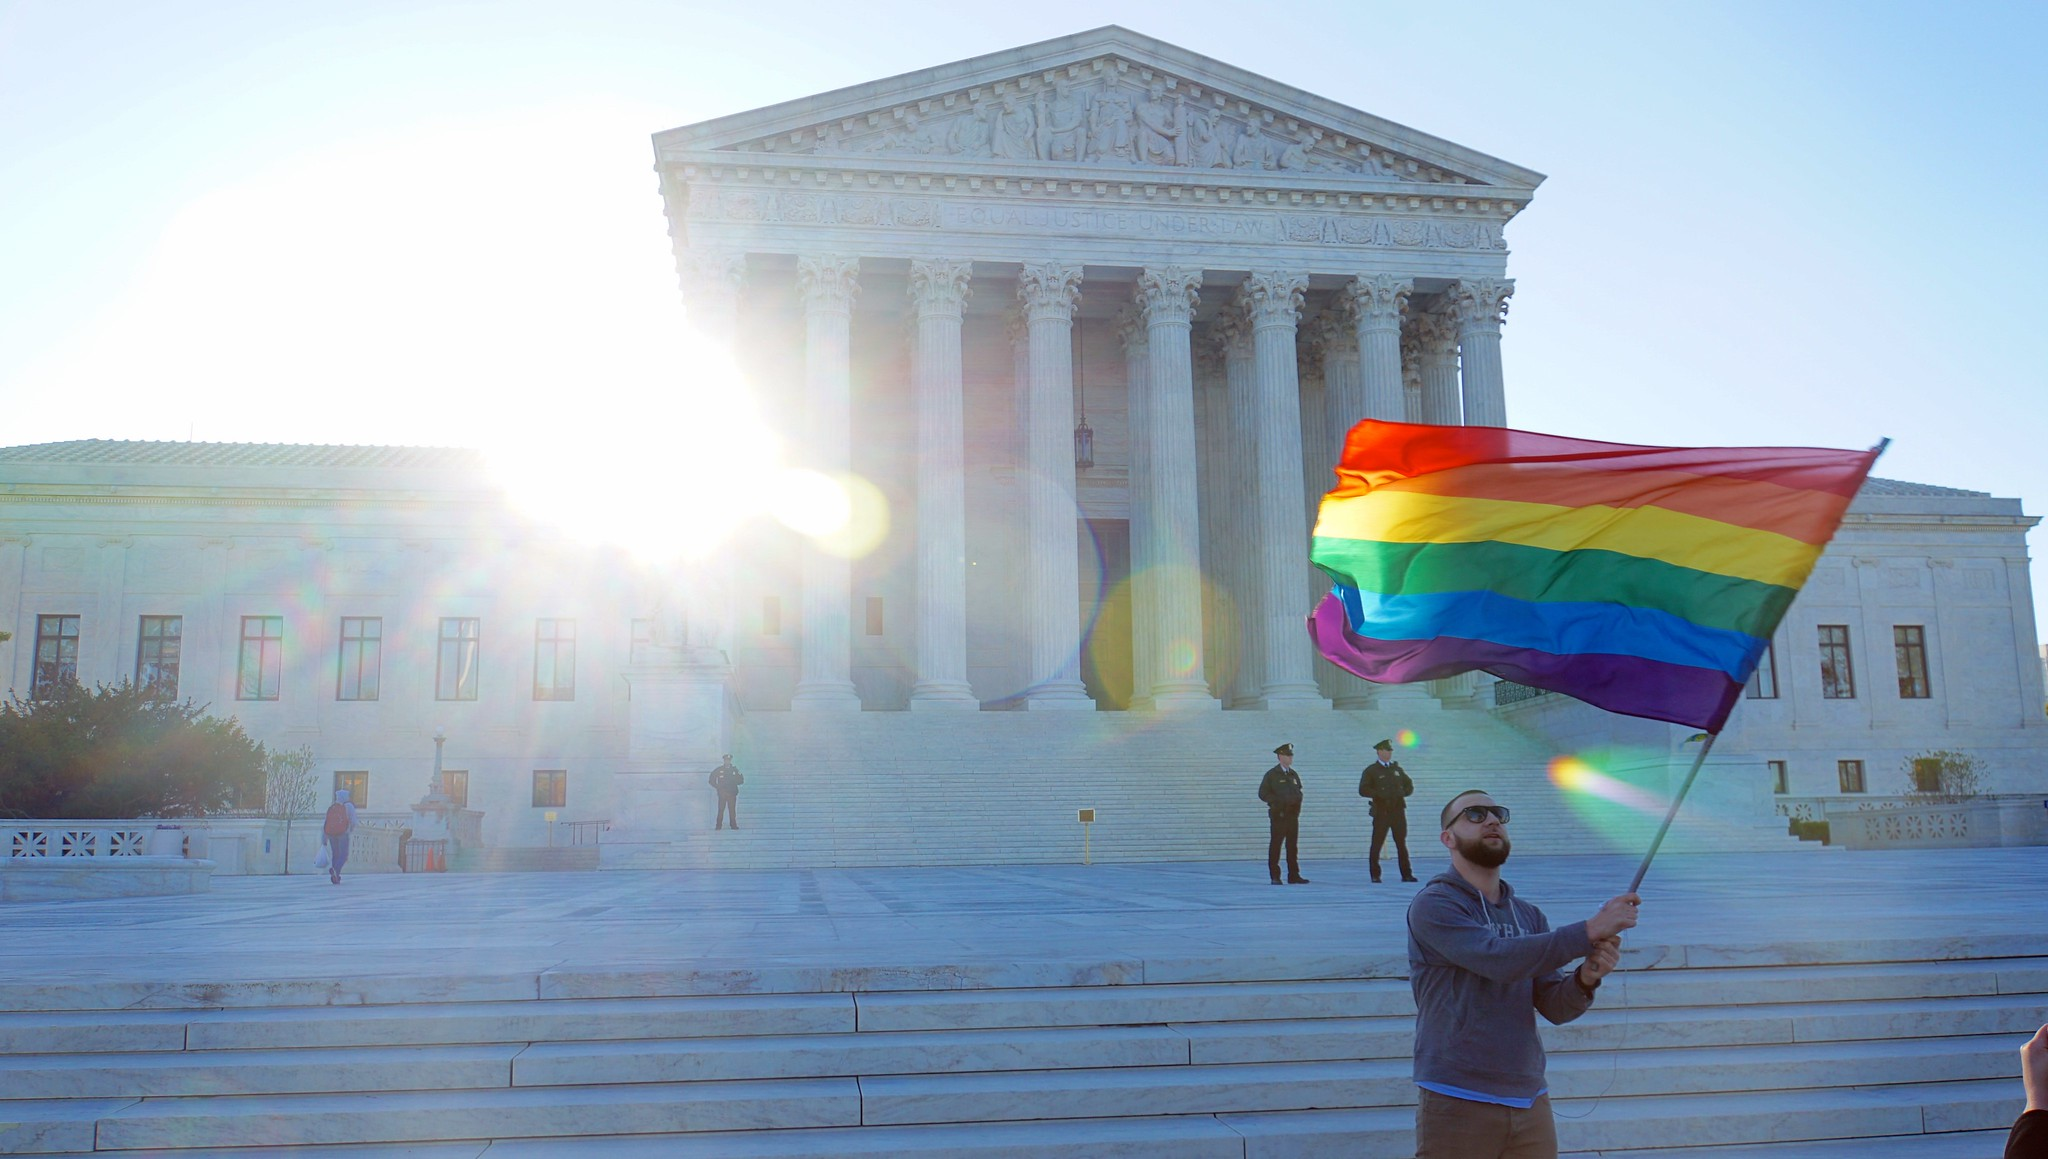 a man stands in front of the U.S. Supreme Court with a LGBTQ flag on April 28, 2015